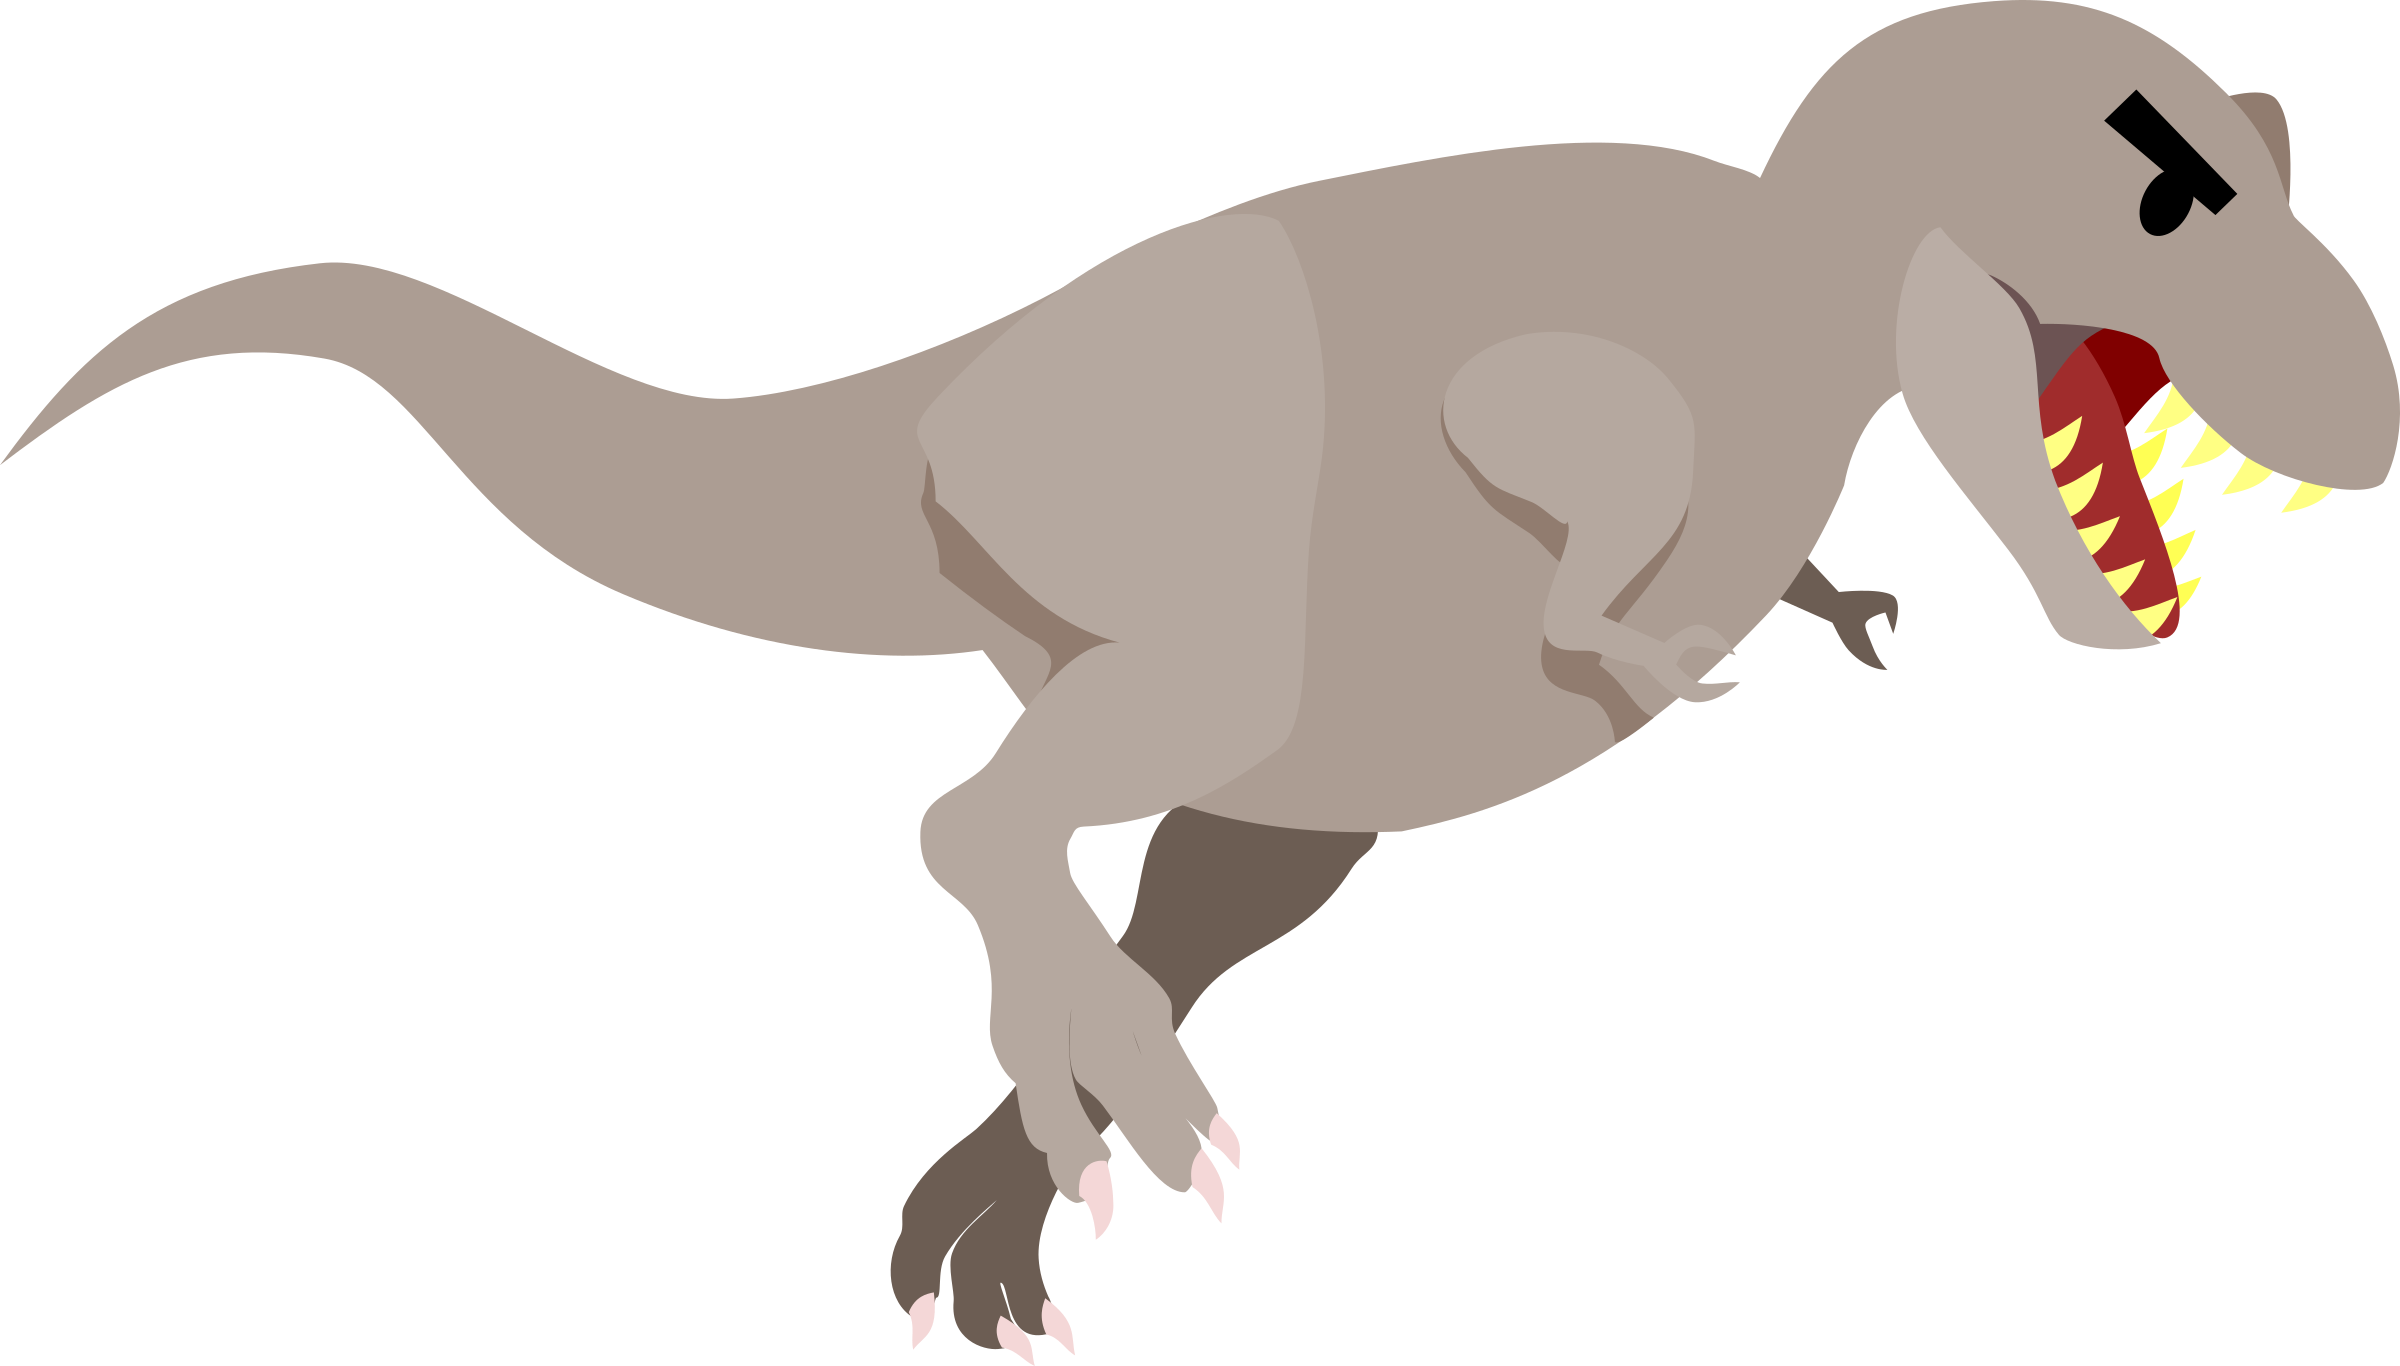 2400x1366 Extinct Clipart Big Dinosaur